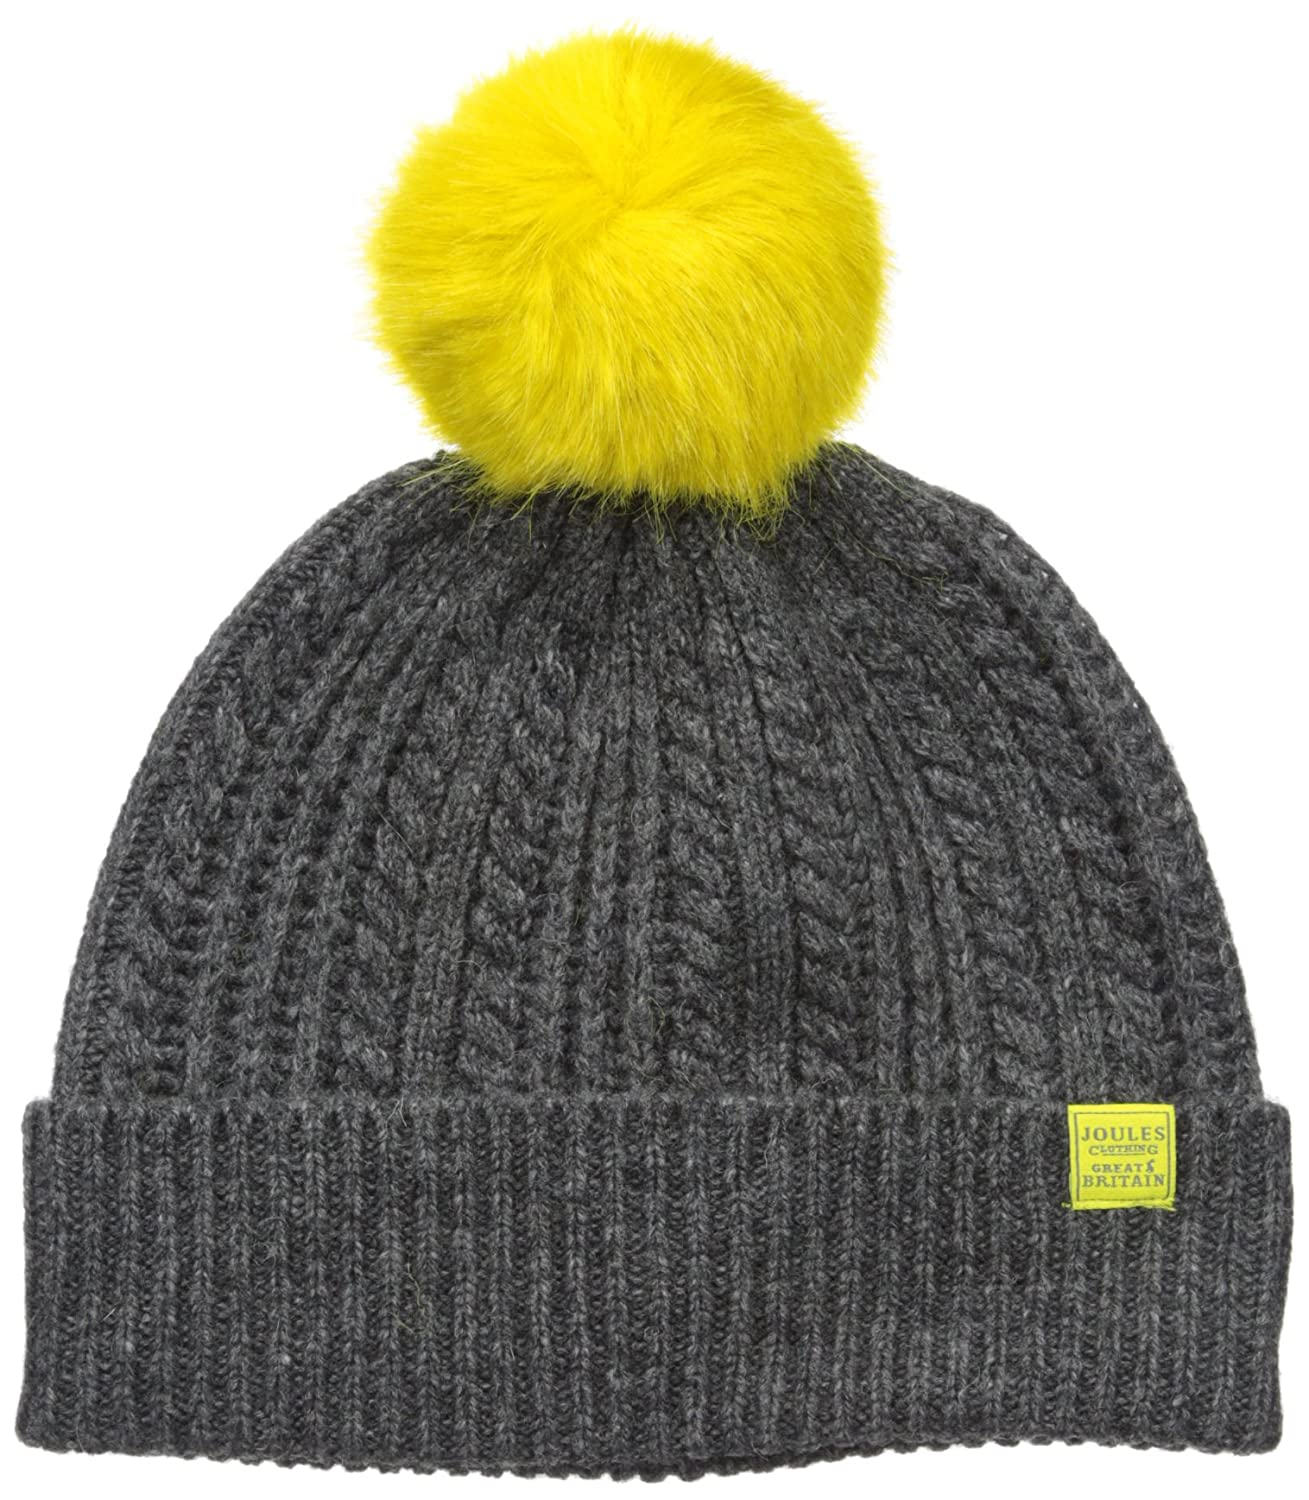 2007bf1f47d1c Joules Women s Bobble Hat Knitted Beanie